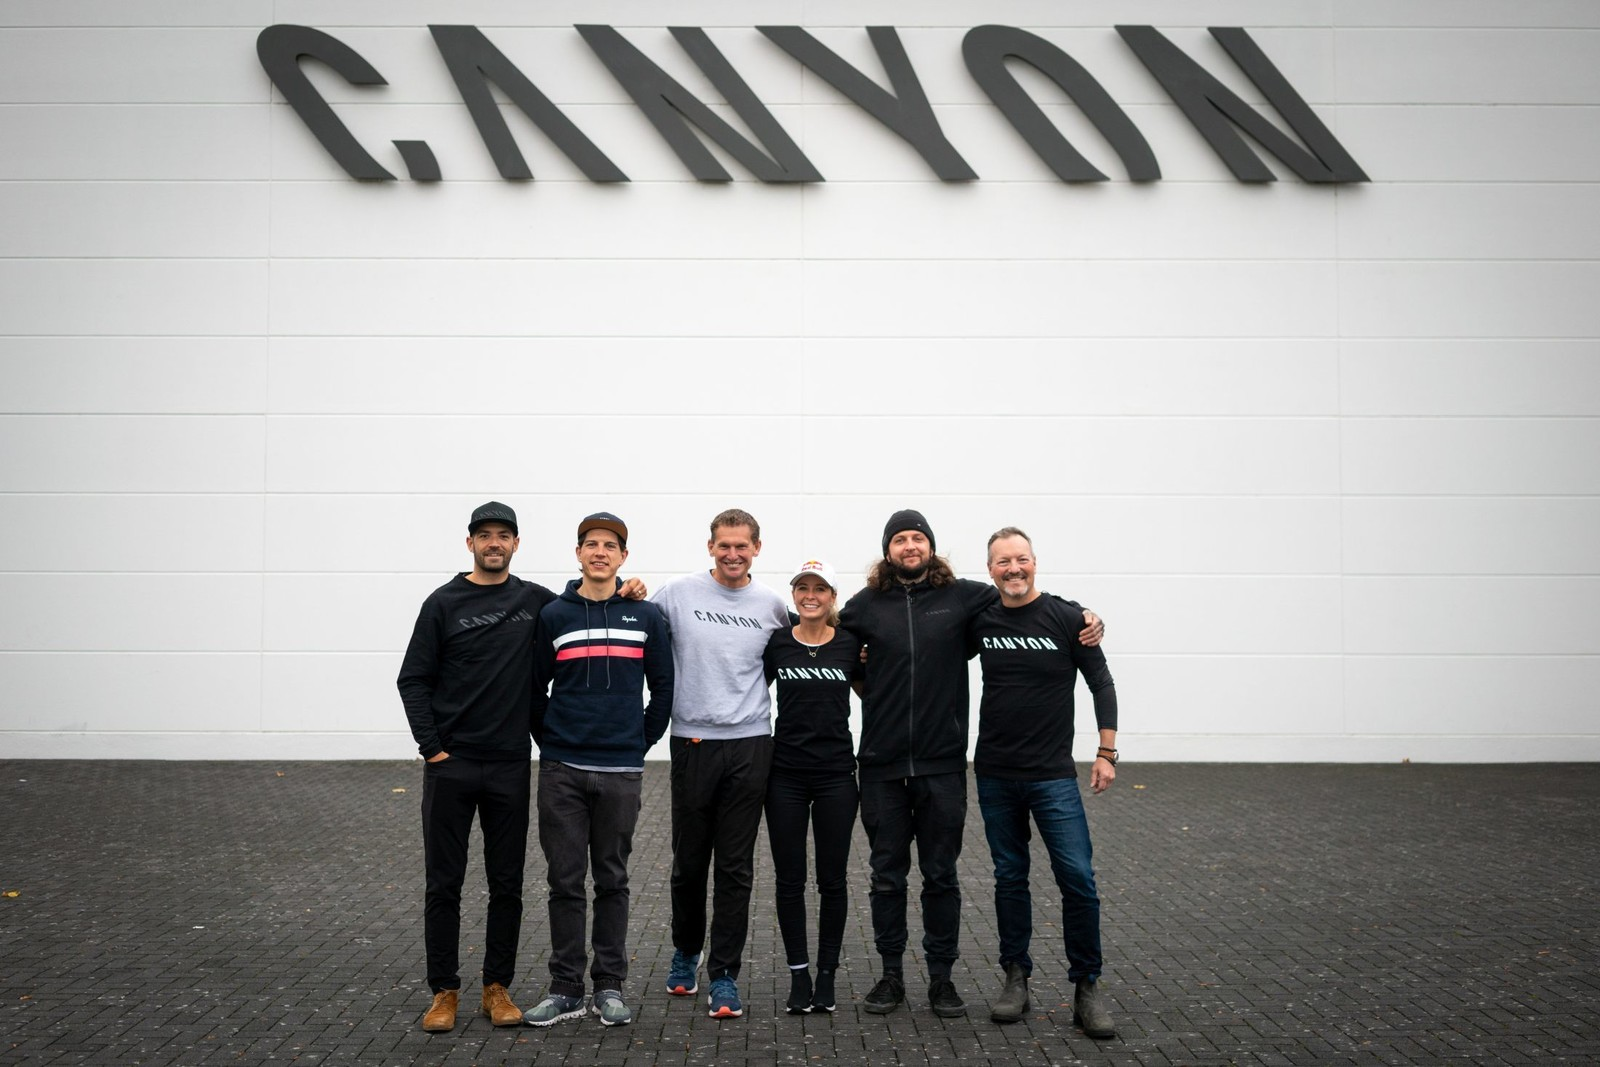 Emily's new team: coach and husband Adam Morka, Canyon Product Manager Julian Biefang, Pro Sport Managers Andreas Walzer and Larry Hartwich, plus Emily's team manager Simon Williams.